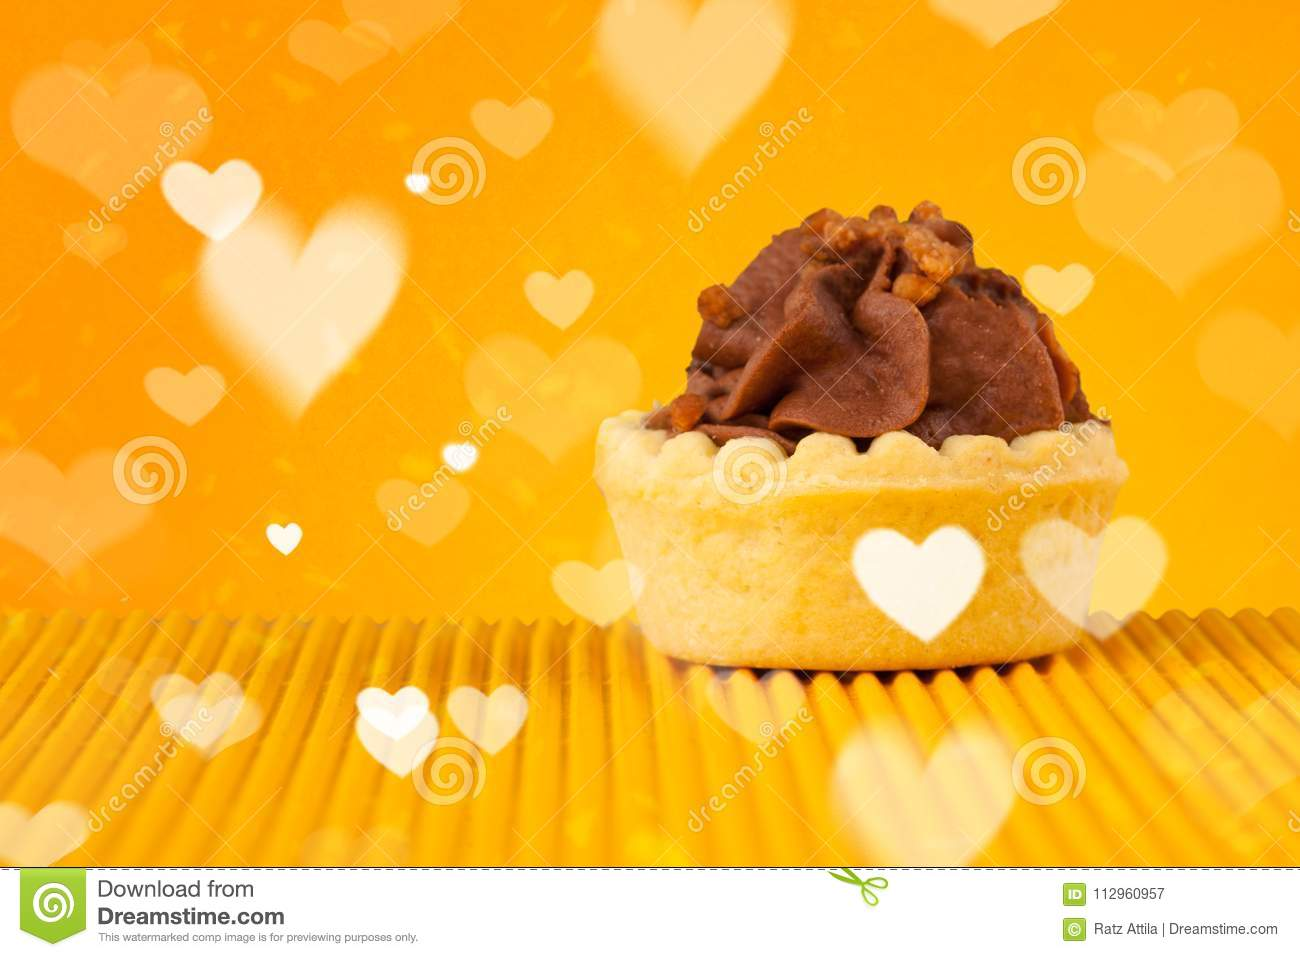 Delicious Party Cakes With Heart Shape Symbols On Colorful